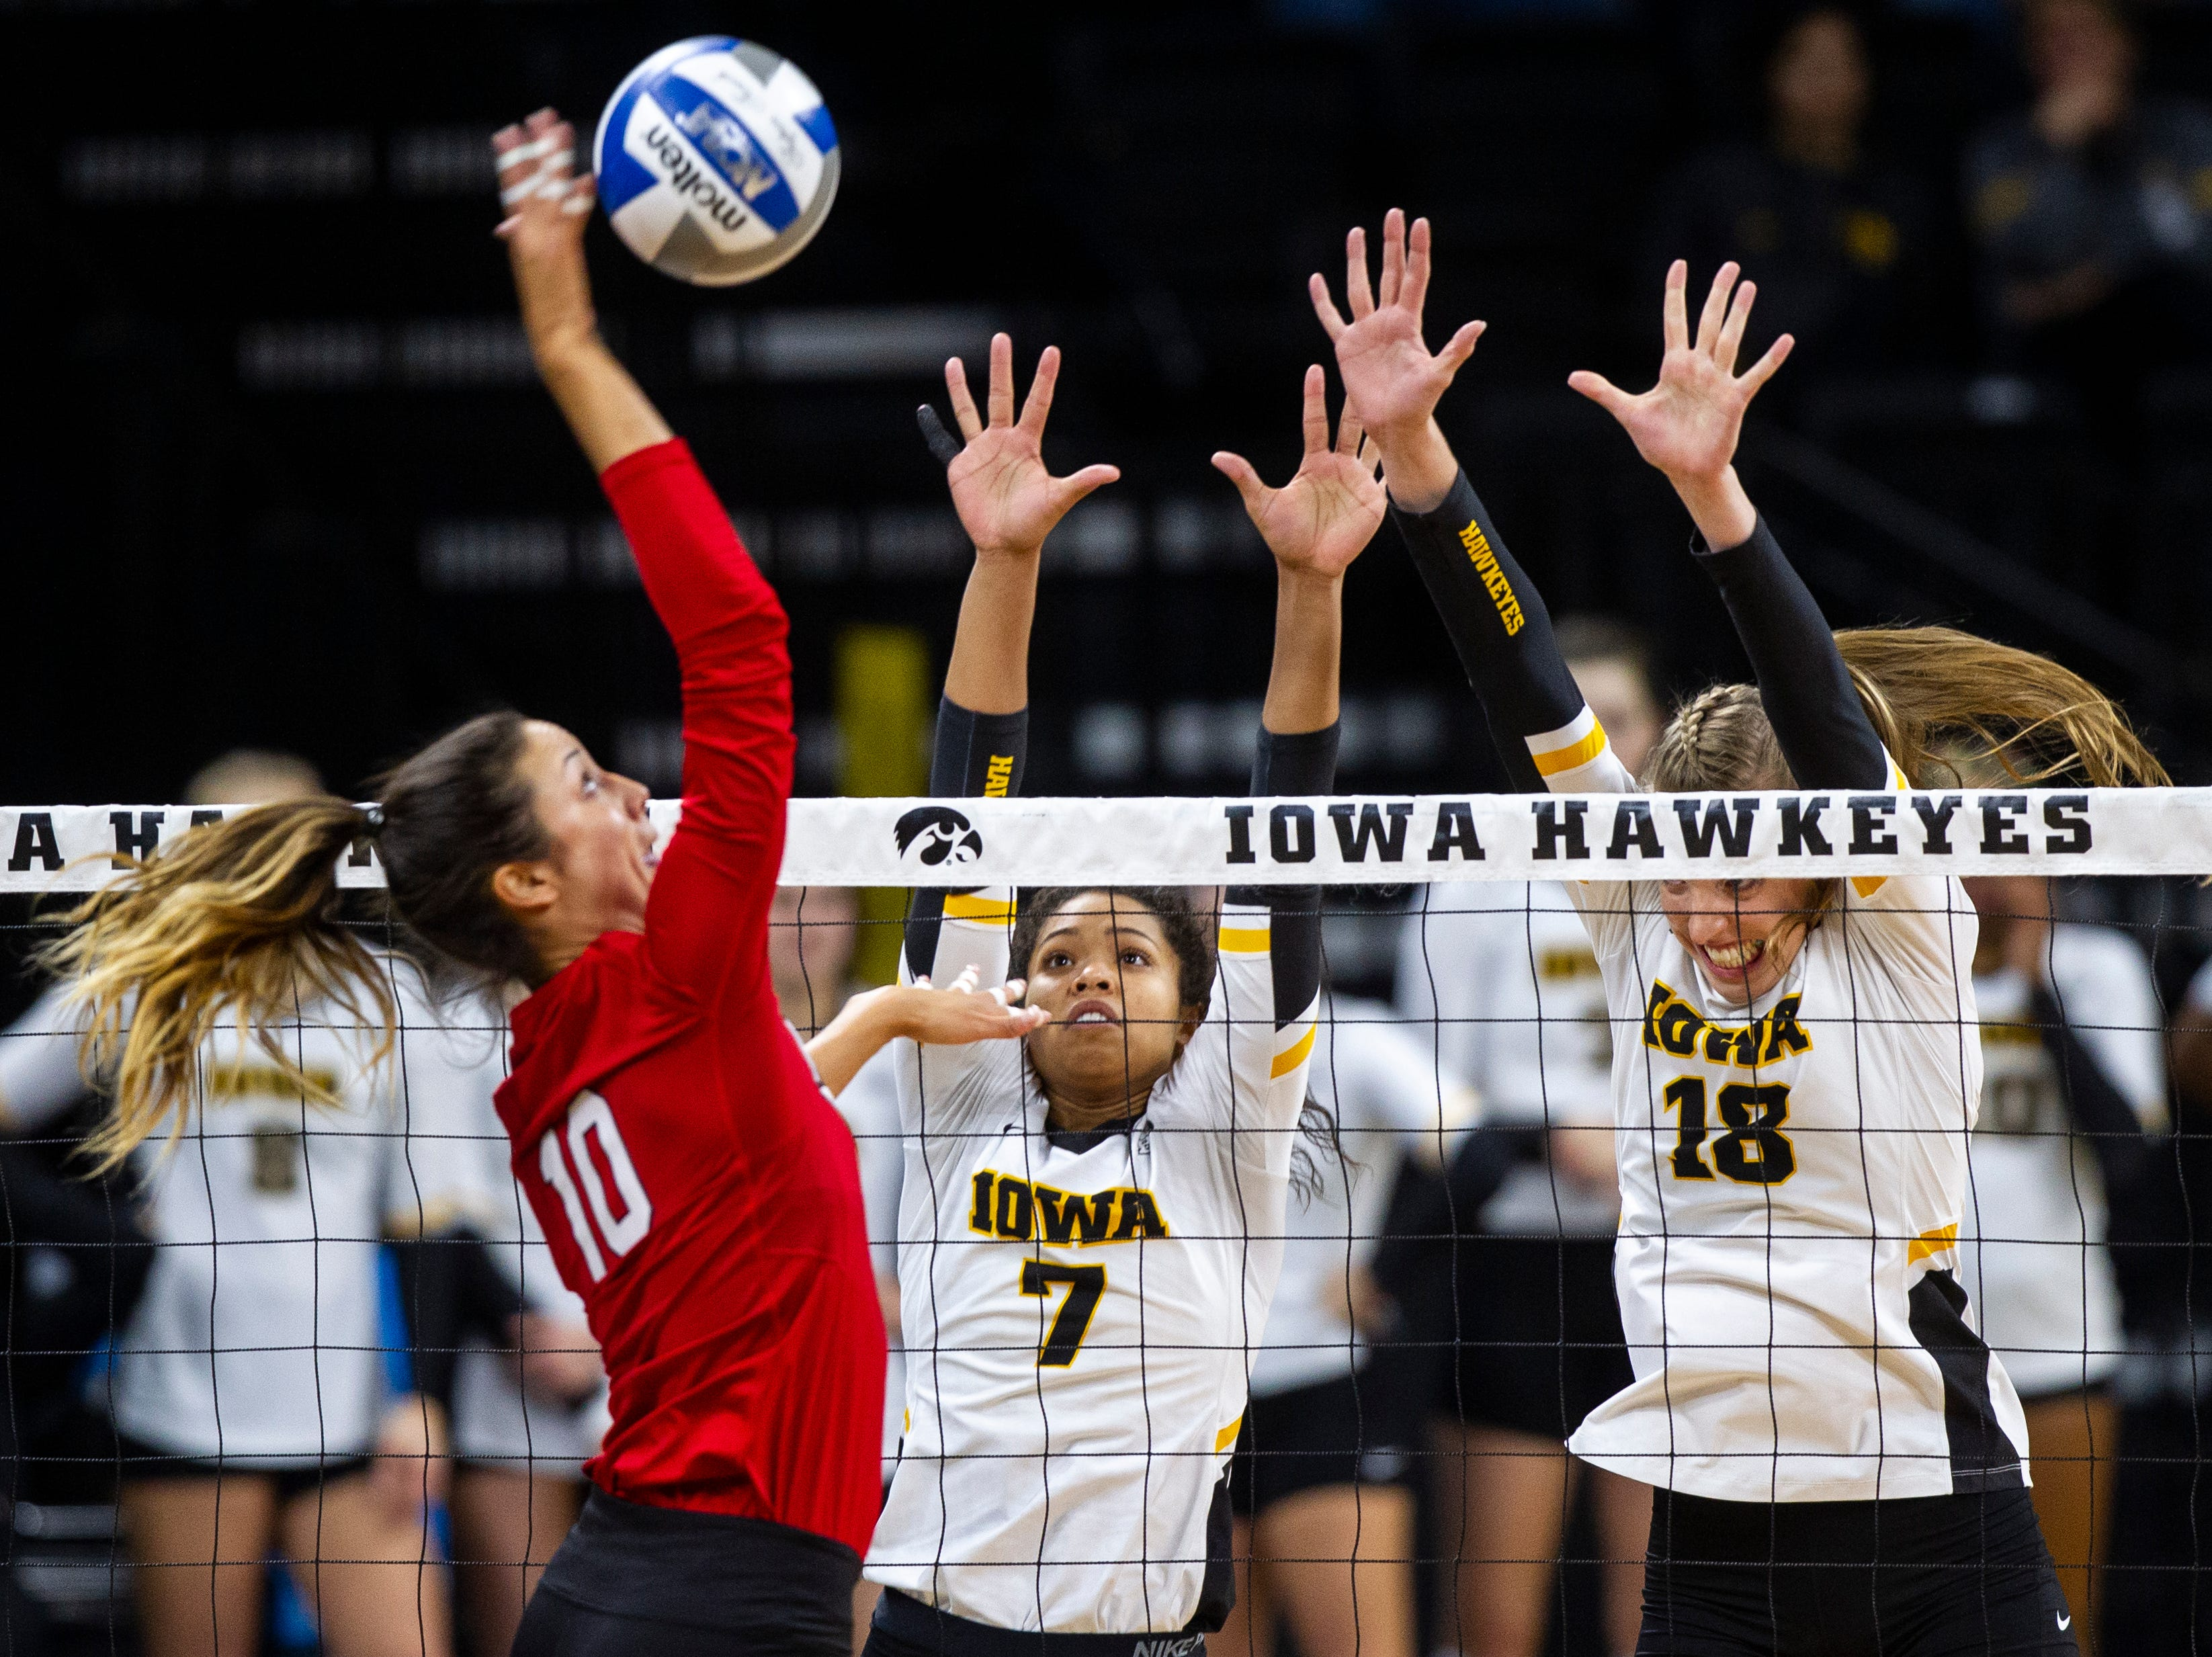 Nebraska's Lexi Sun (10) gets a ball past Iowa setter Brie Orr (7) and middle blocker Hannah Clayton (18) during an NCAA volleyball game on Wednesday, Nov. 7, 2018, at Carver-Hawkeye Arena in Iowa City.